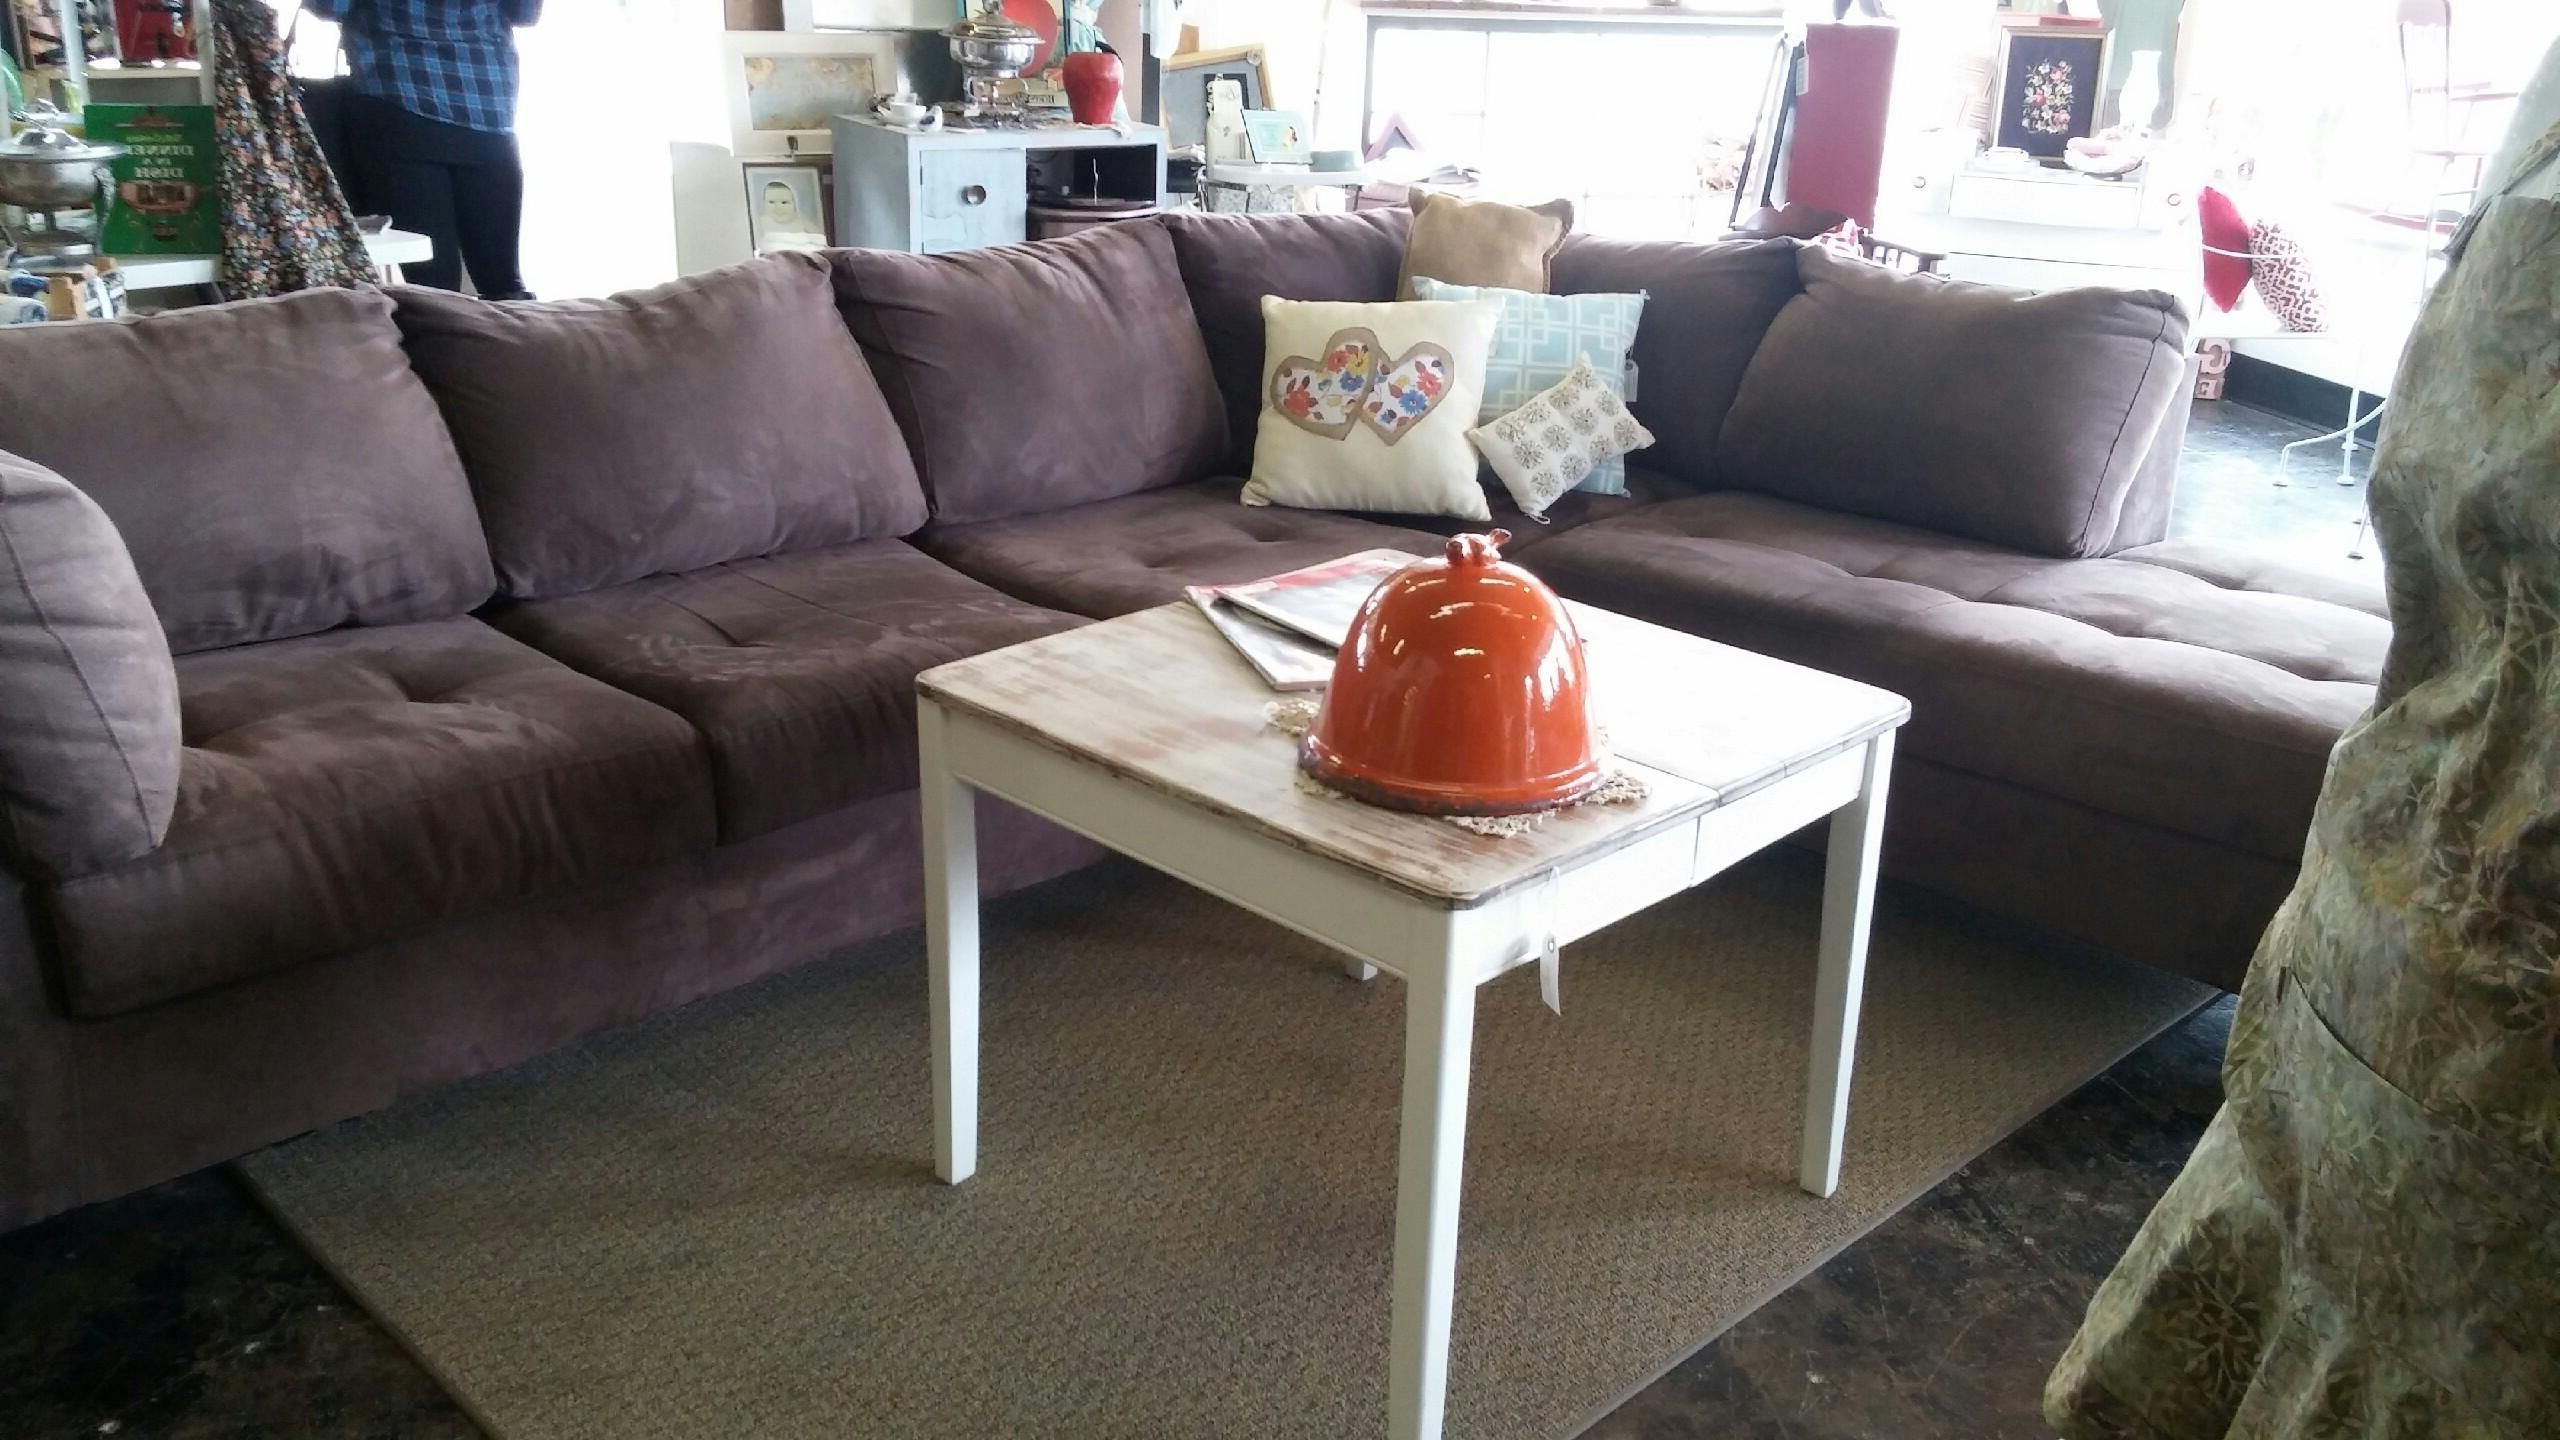 Fashionable French Seamed Sectional Sofas Oblong Mustard With Regard To Pinmustard Seed Home Decor & More On Furniture (View 7 of 20)